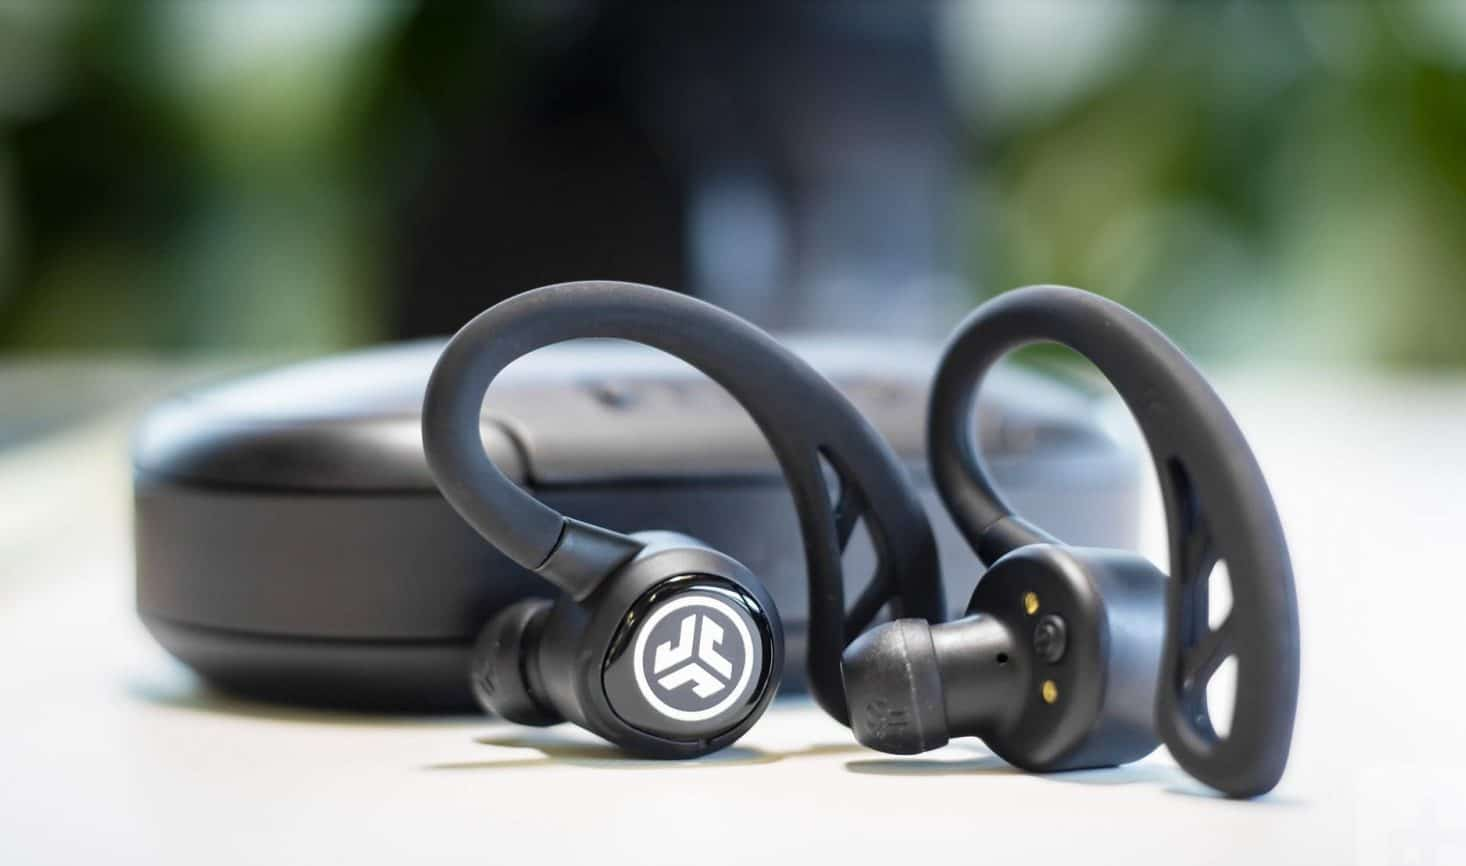 Jlab Bluetooth Headphones - Best to Buy